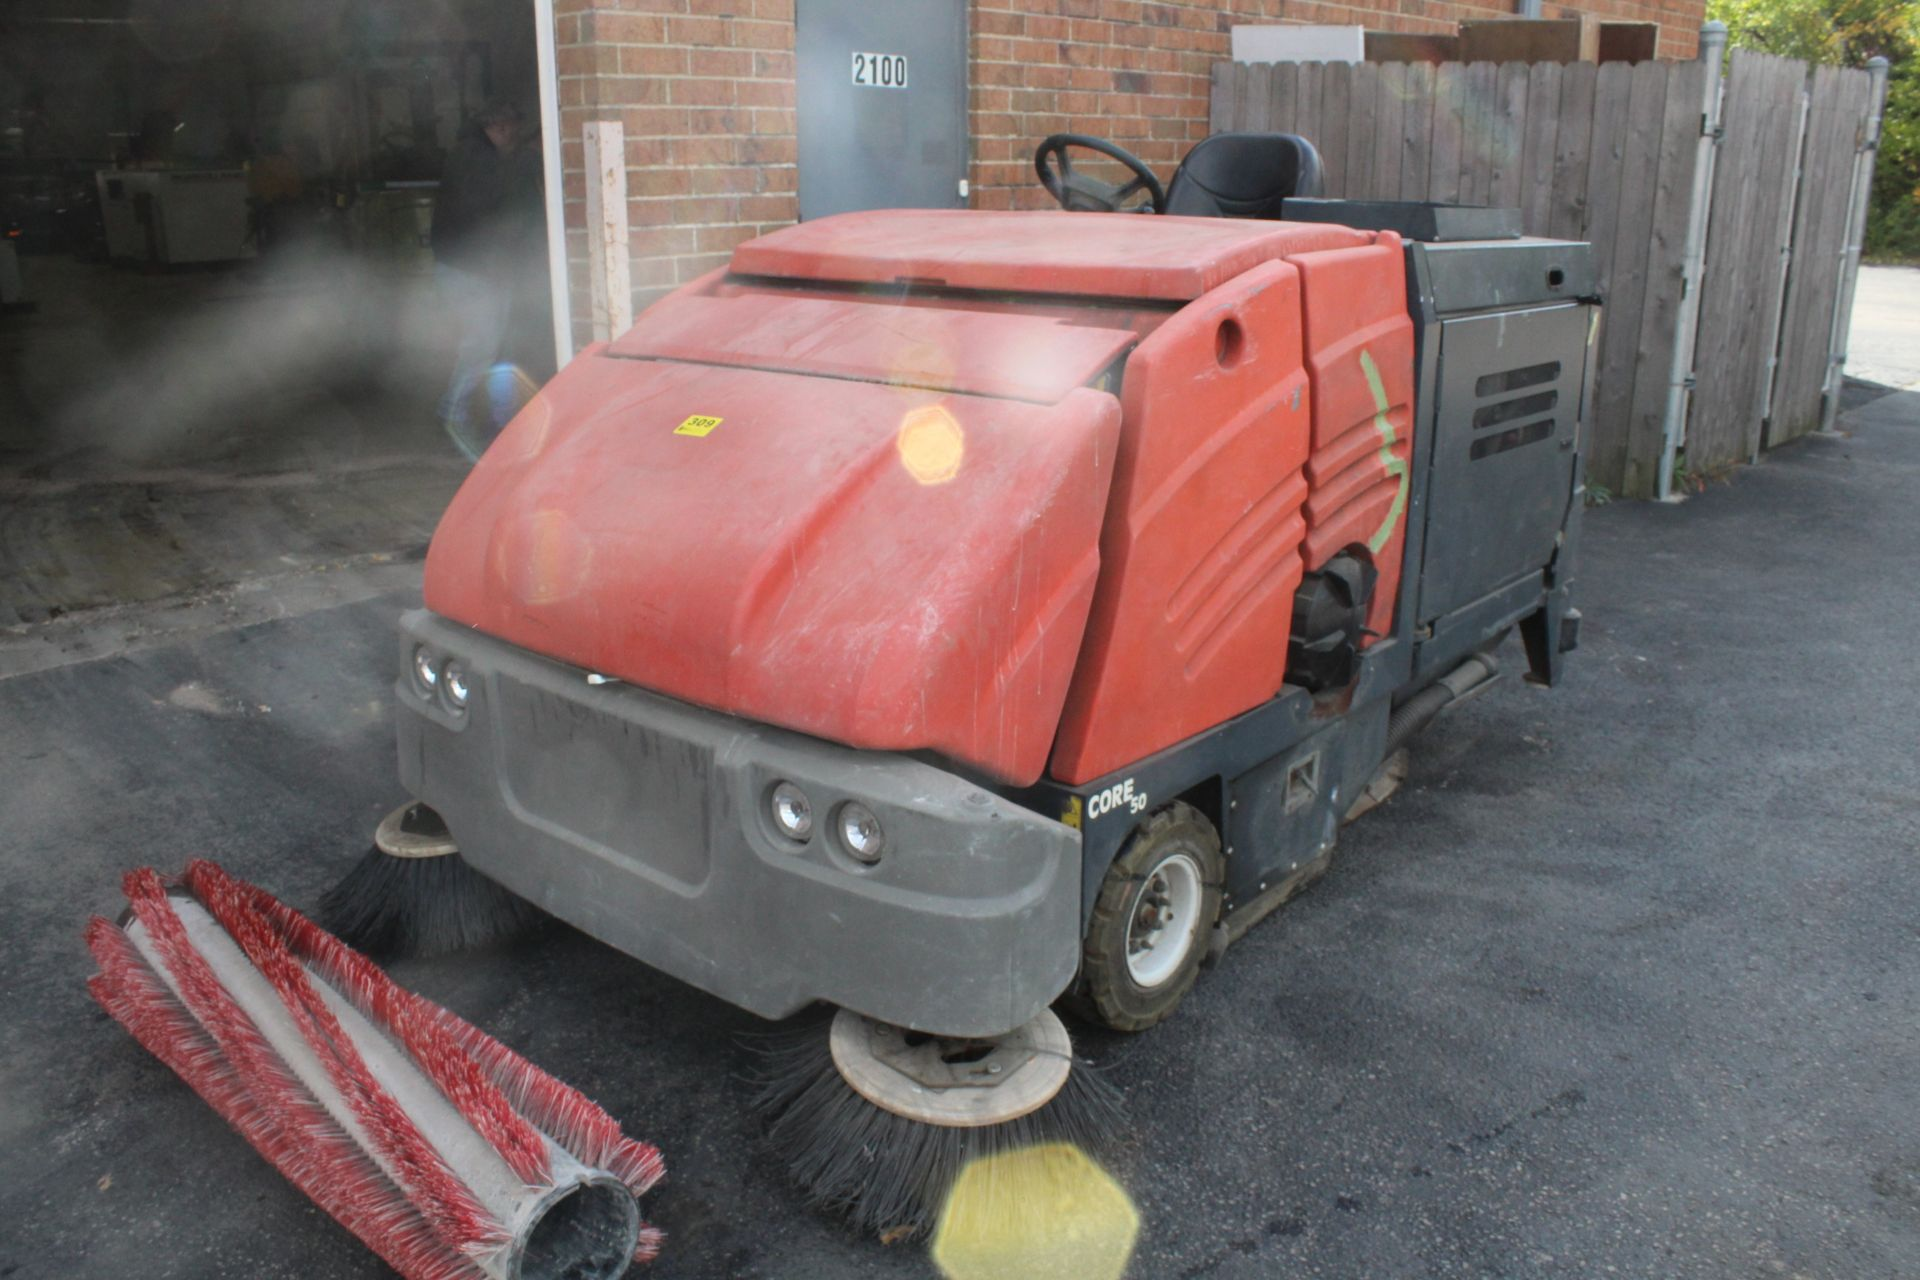 POWERBOSS CORE 50 RIDE ON SWEEPER SCRUBBER - Image 4 of 6